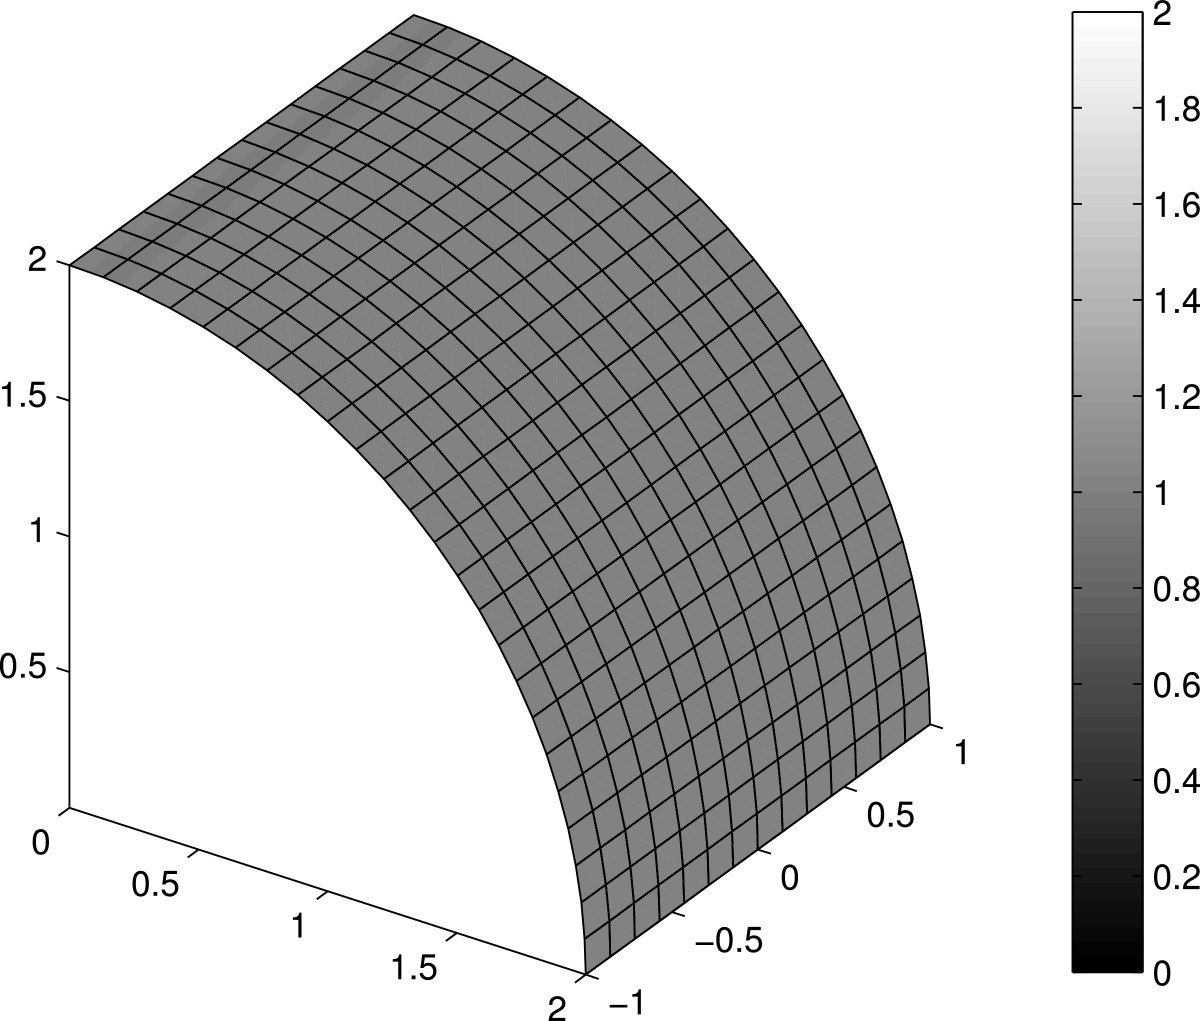 https://static-content.springer.com/image/art%3A10.1186%2F2213-7467-1-4/MediaObjects/40323_2013_Article_3_Fig38_HTML.jpg